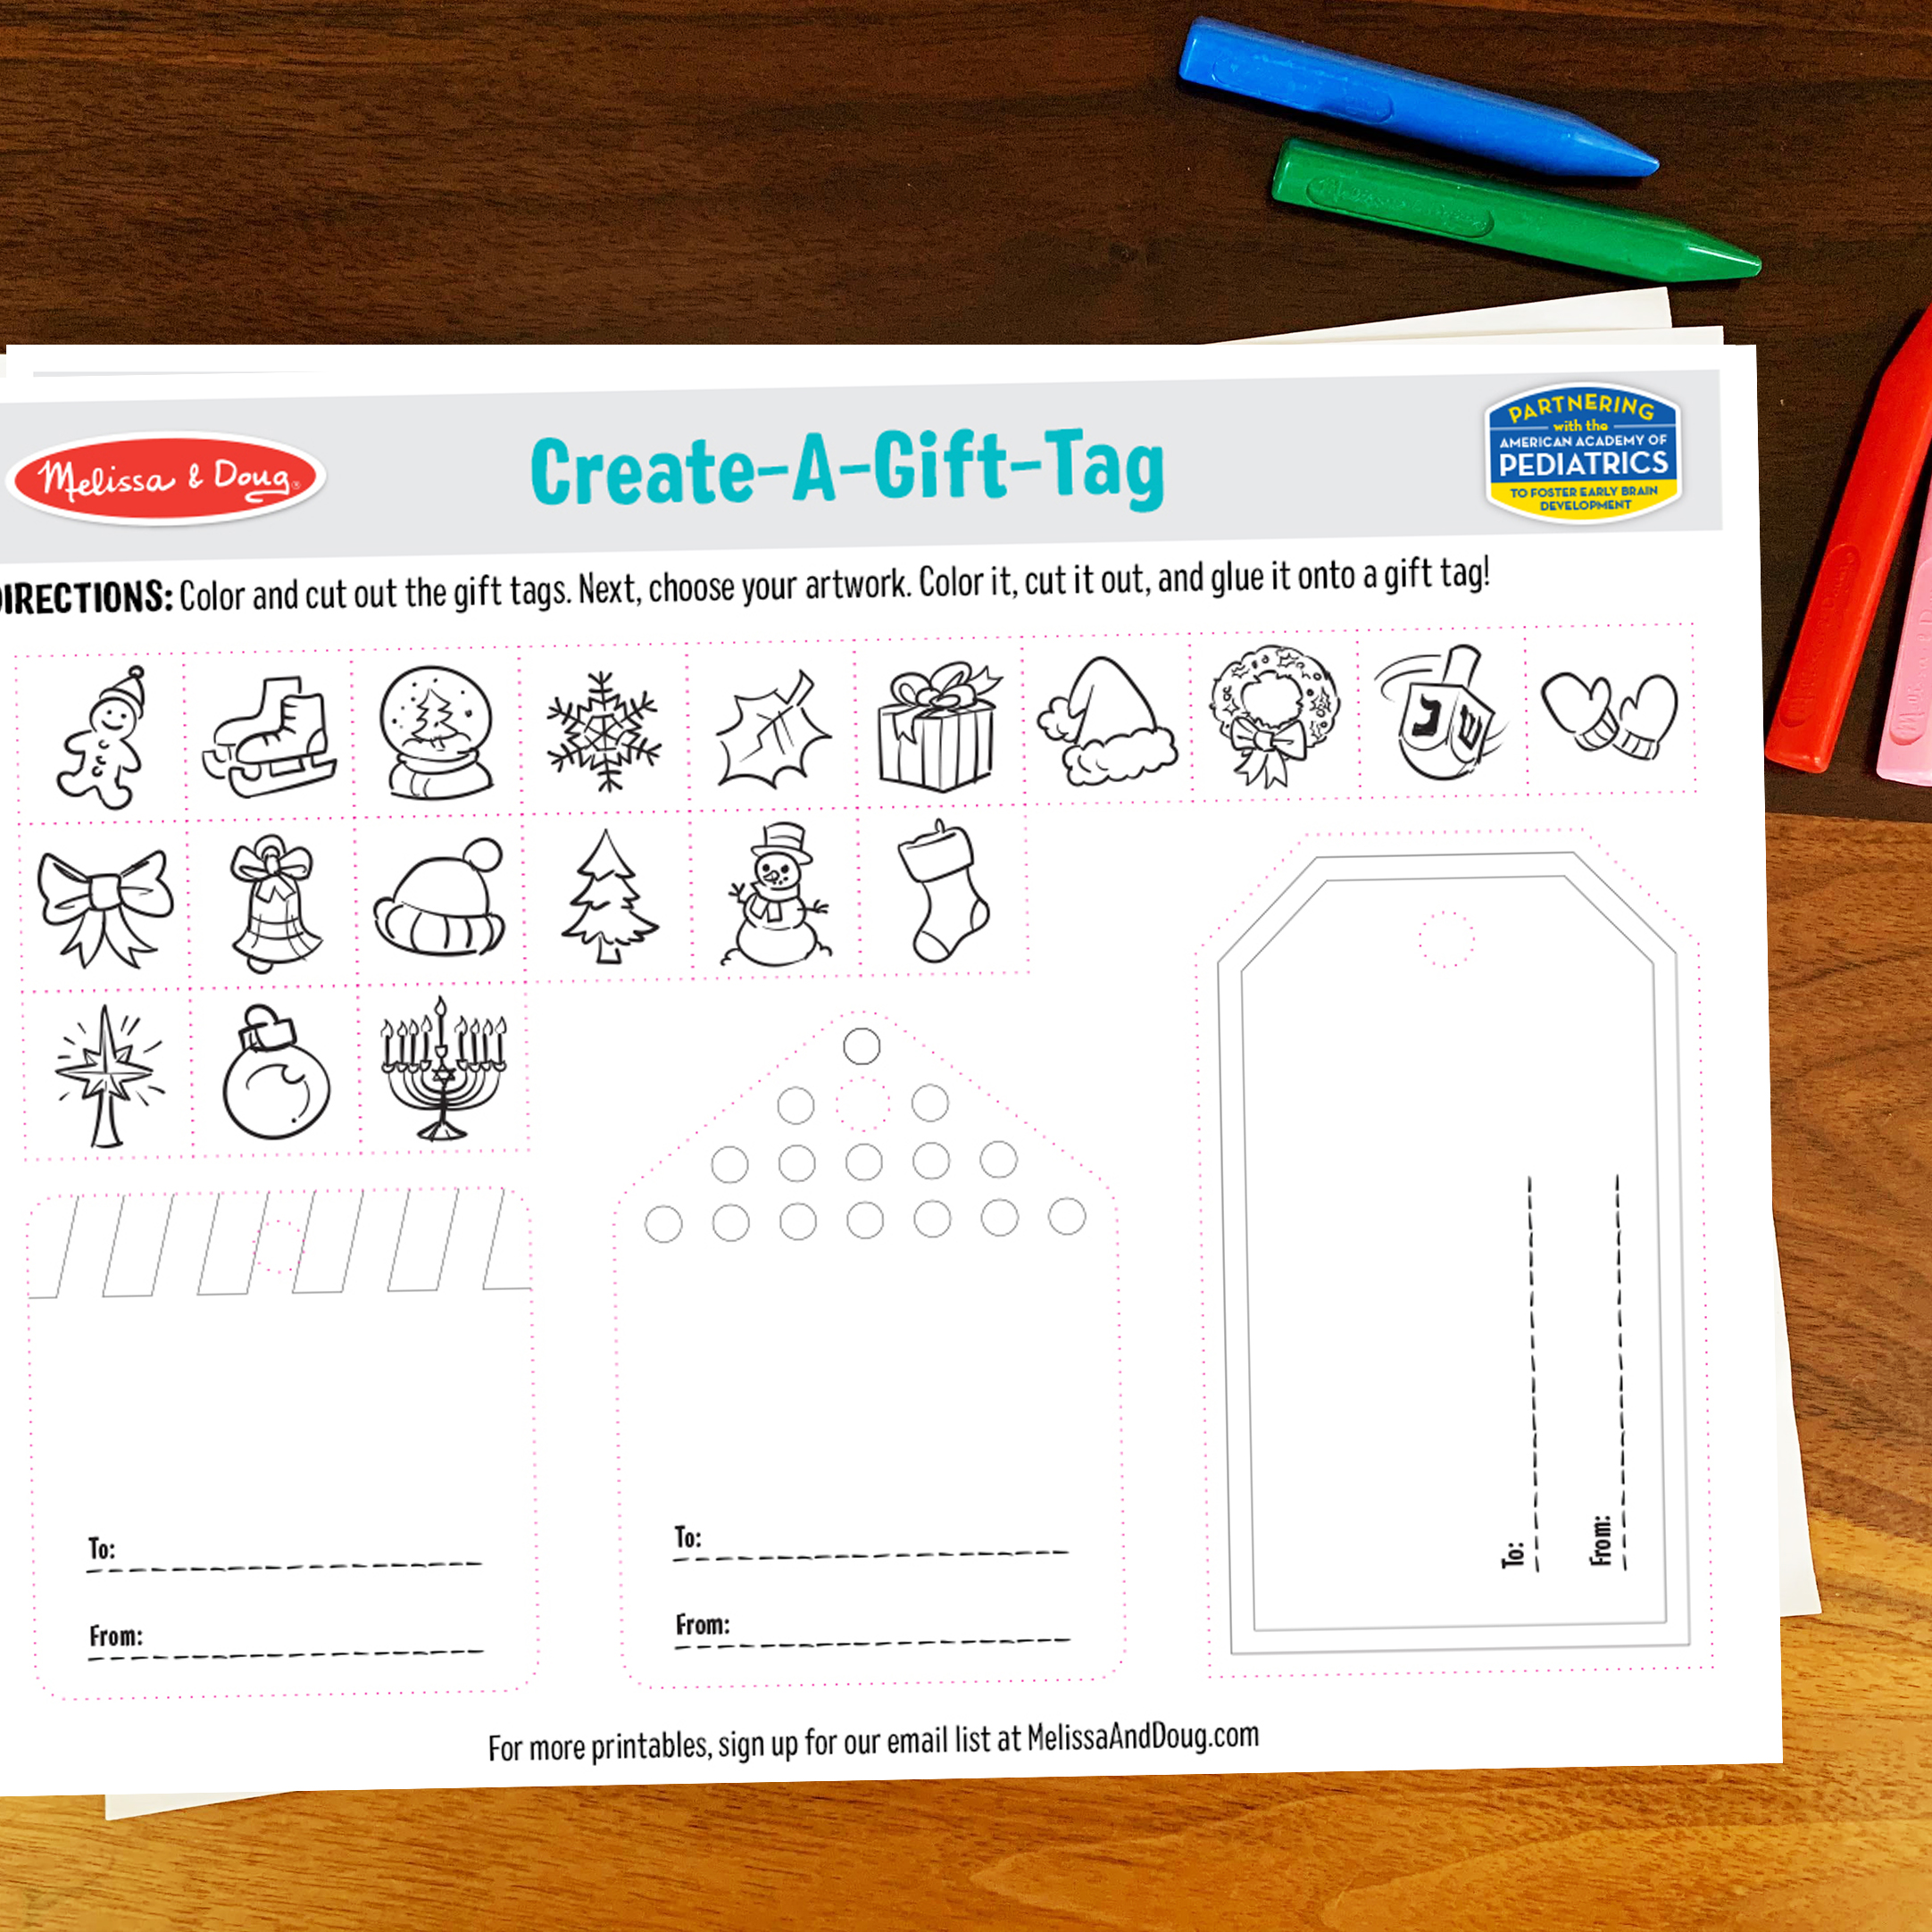 3 Free Holiday Printables to Make Christmas Extra Special